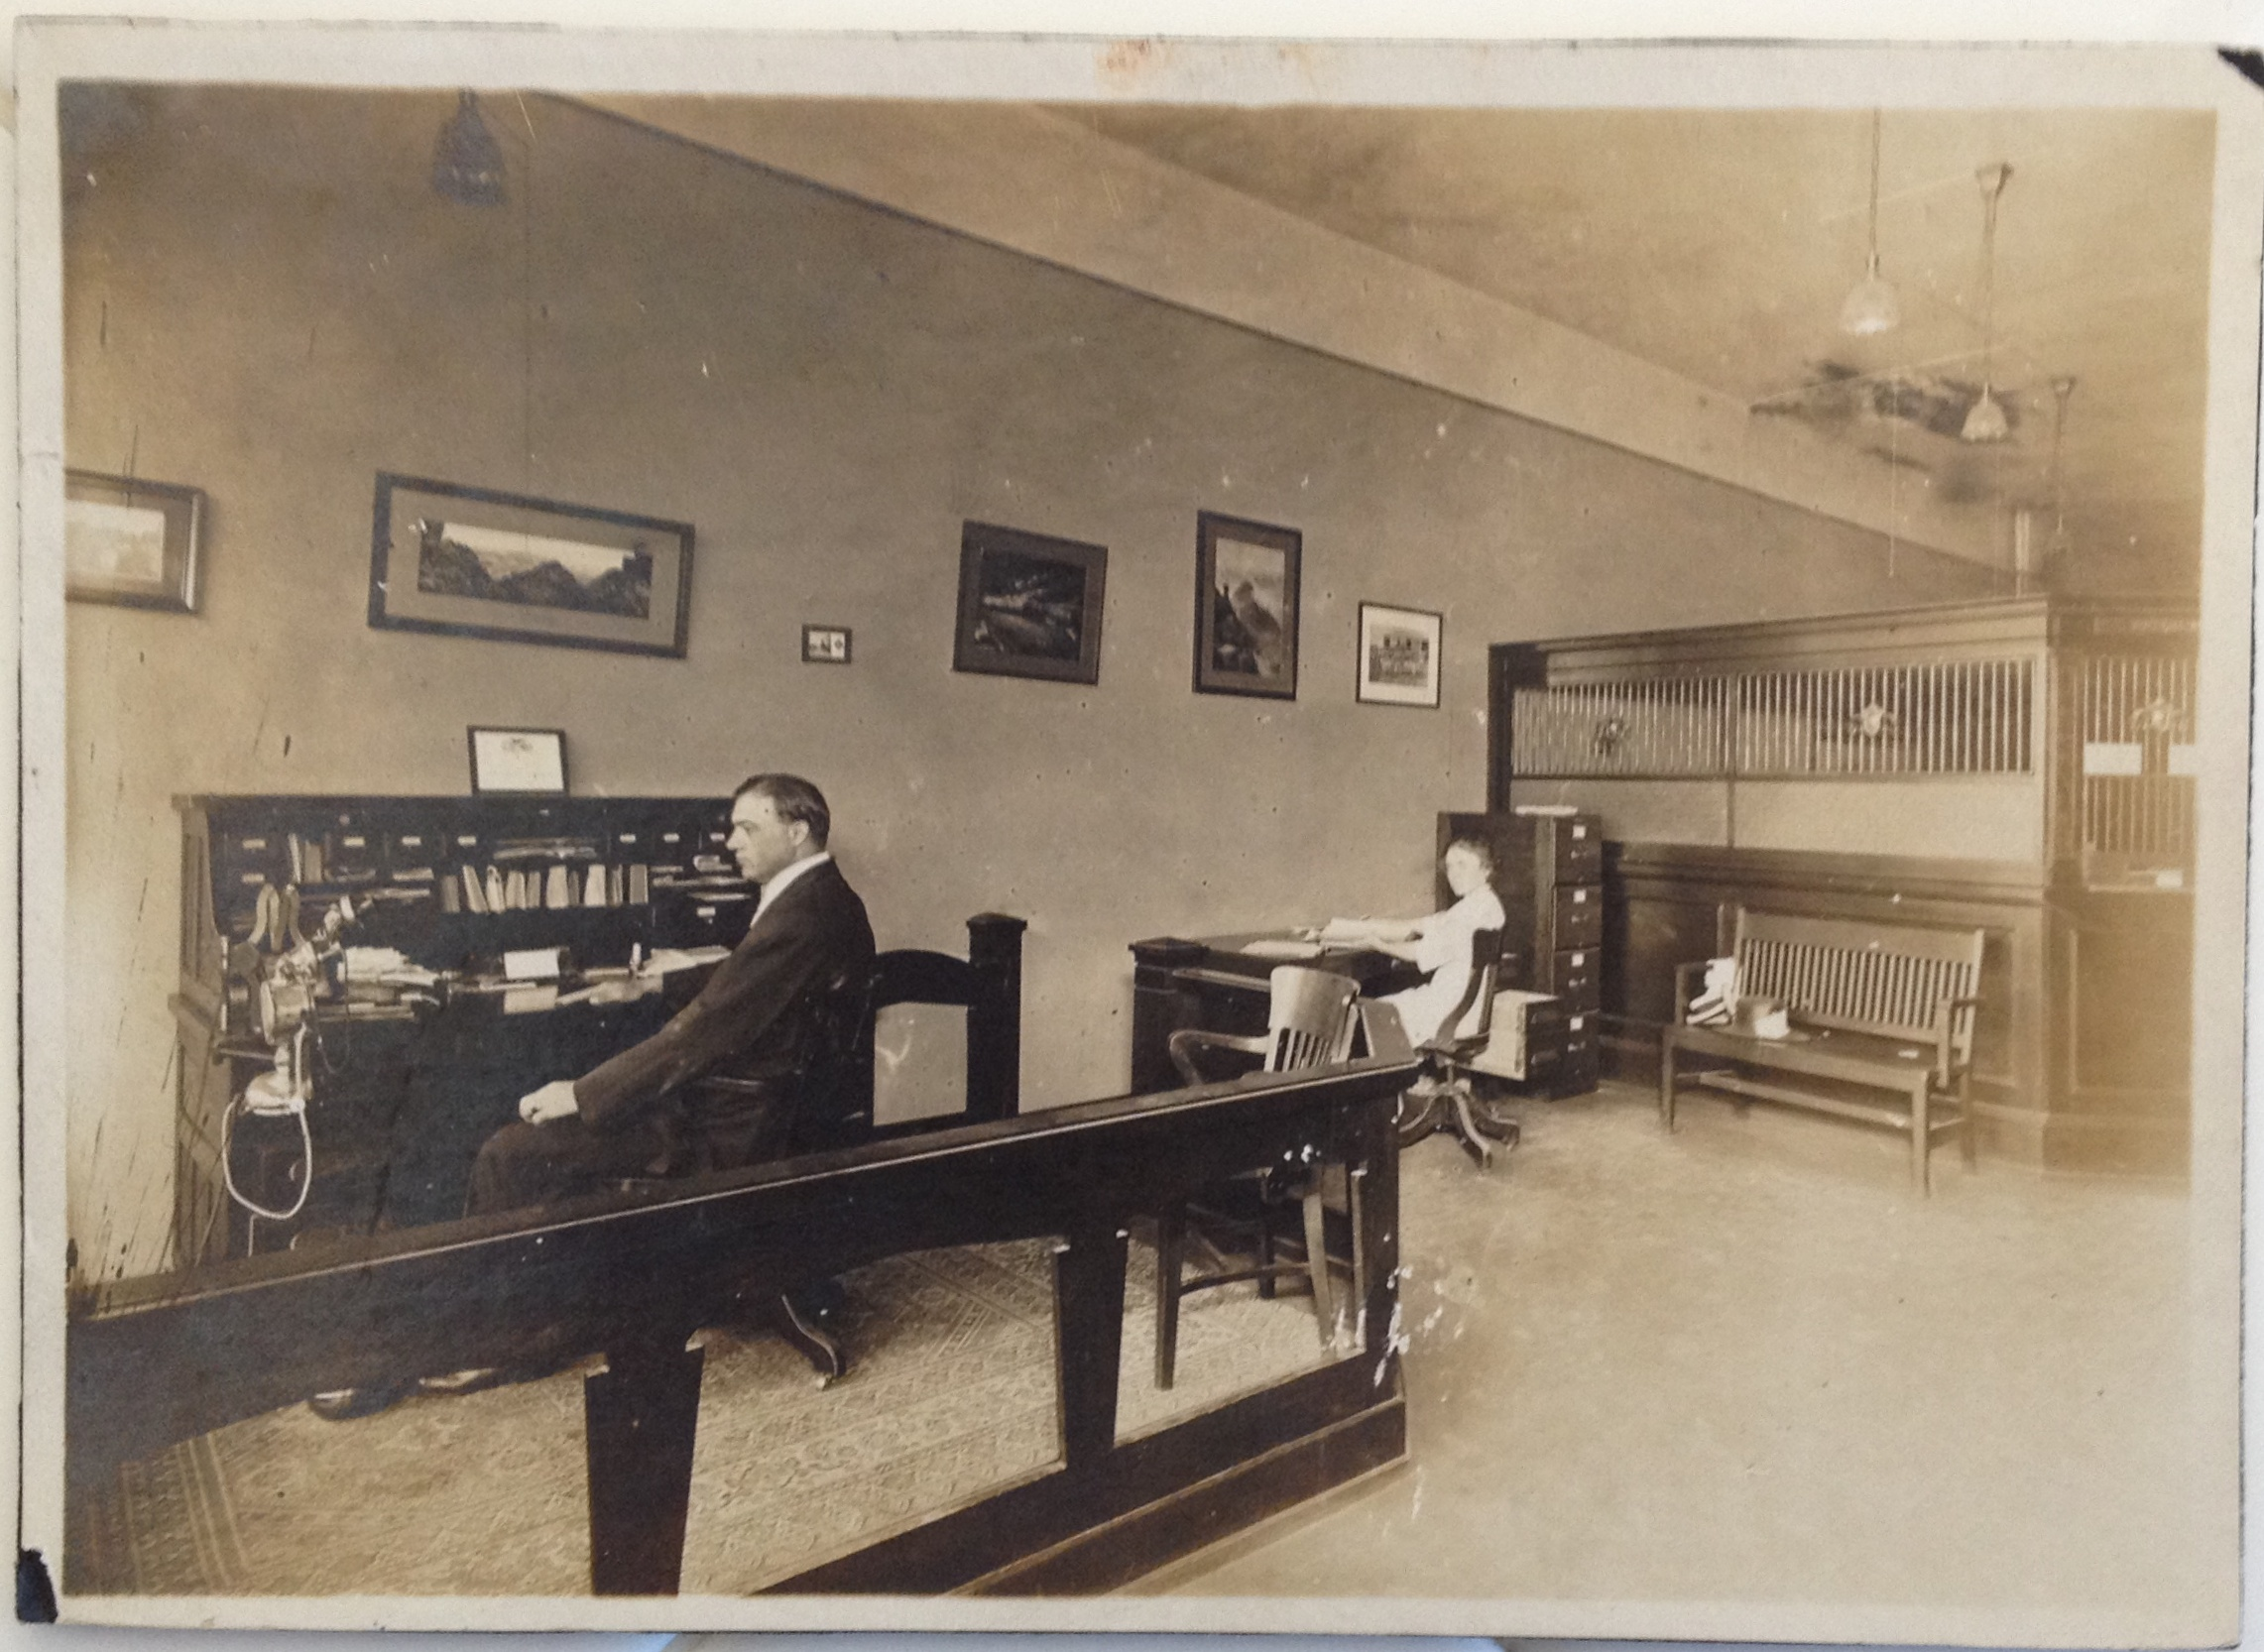 Wells Fargo & Co.'s Express Agency Office interior